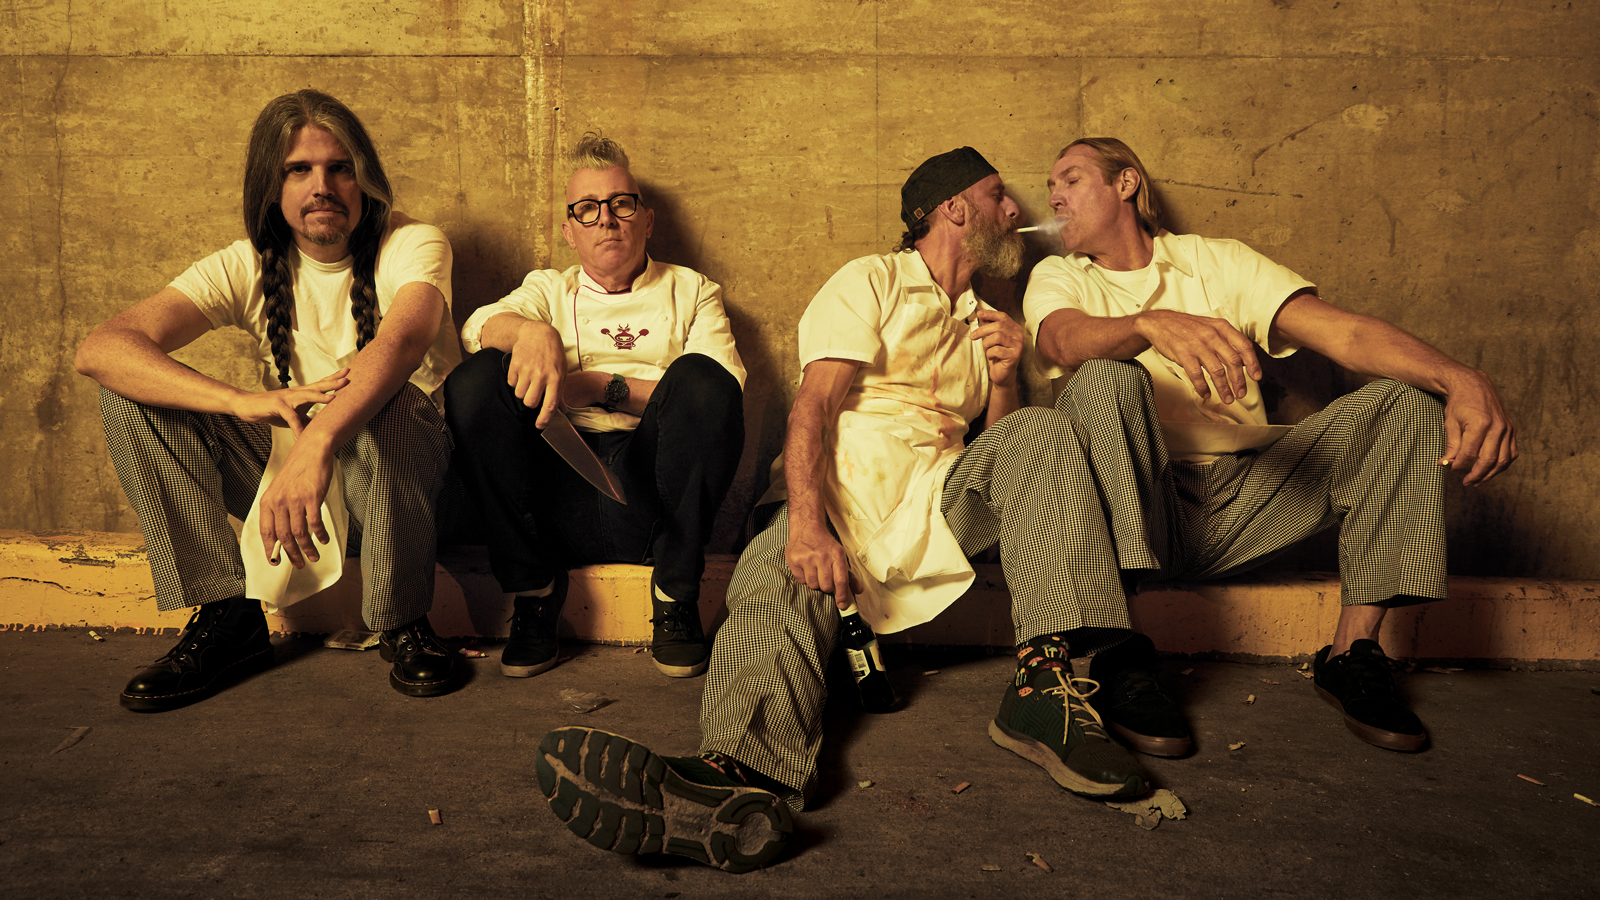 Tool Appear on Cover of Revolver's New Aug/Sept Issue